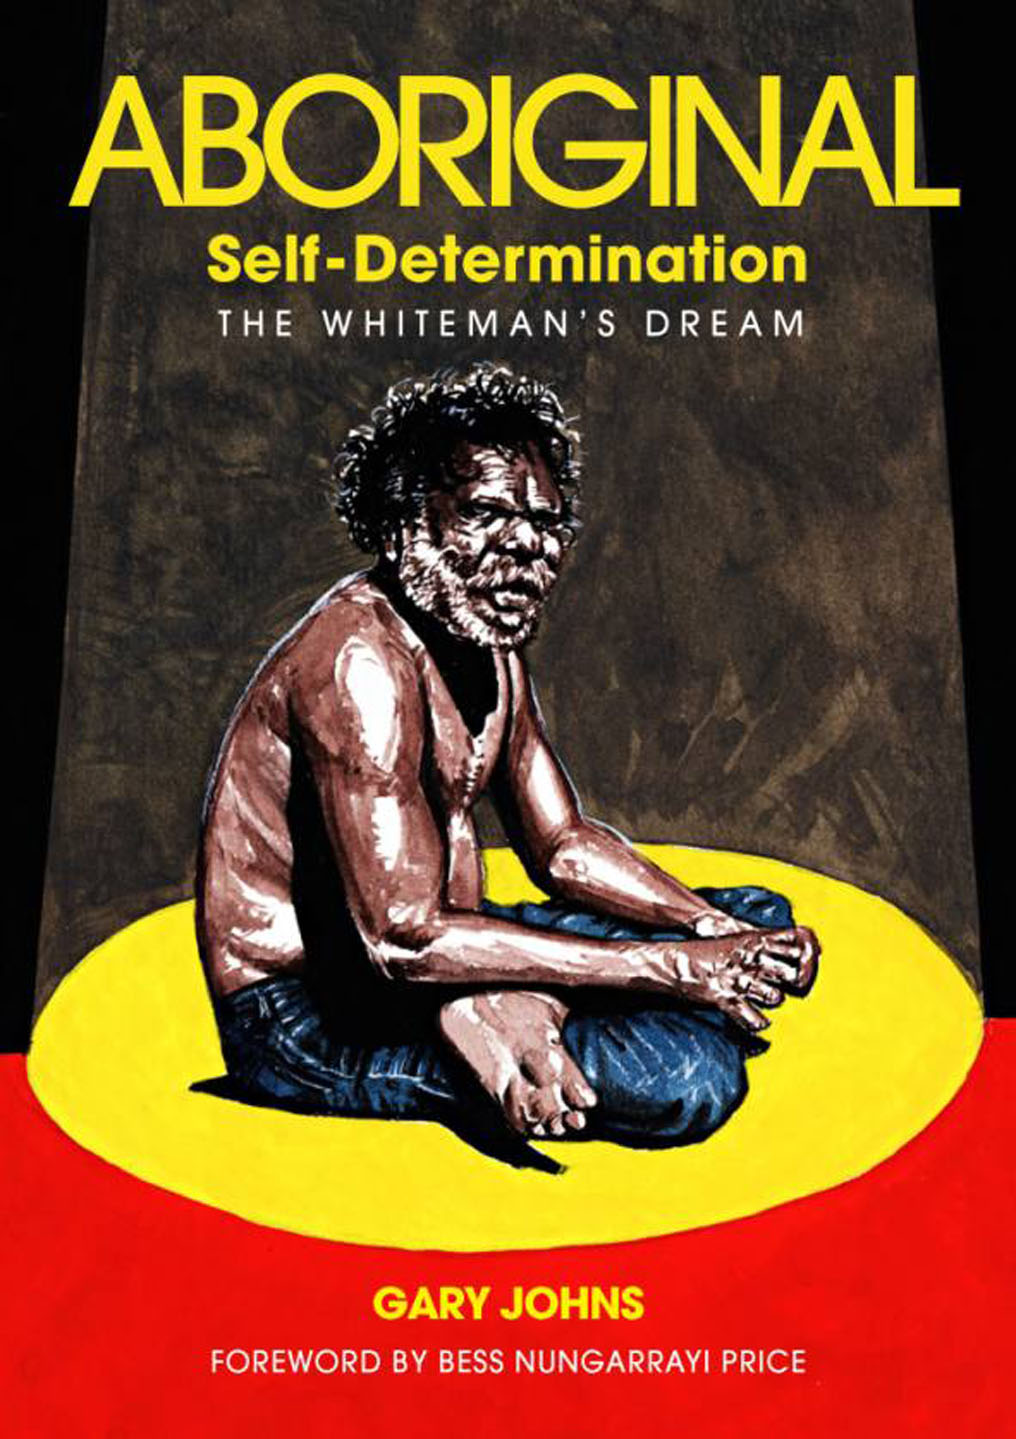 Aboriginal Self-Determination: The Whiteman's Dream / Gary Johns